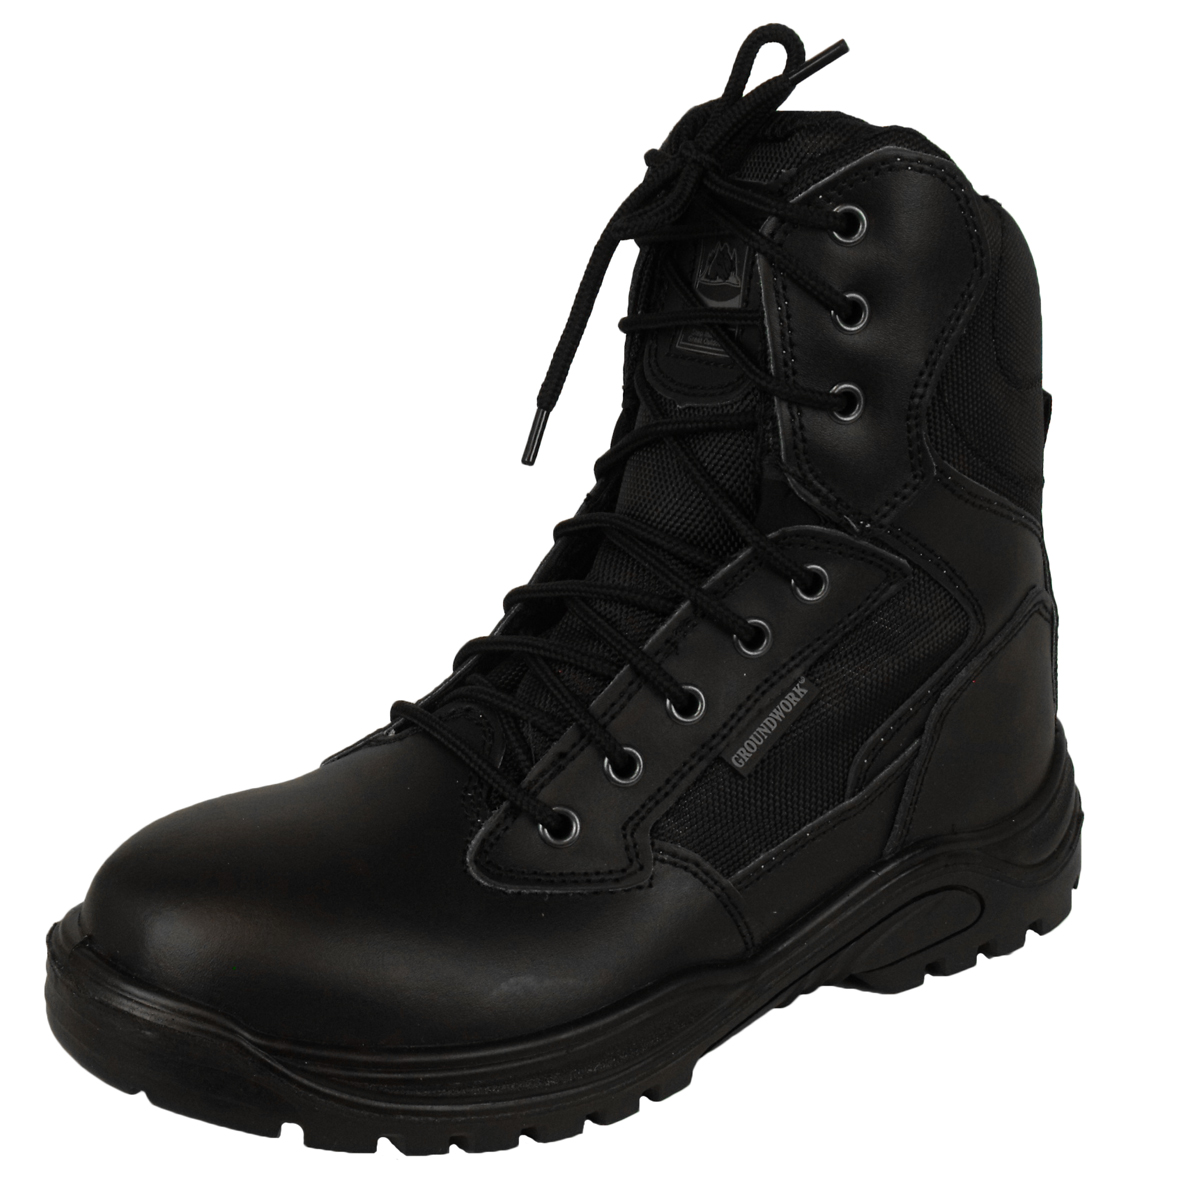 Mens Leather Combat Tactical Safety Ankle Boots Security ...